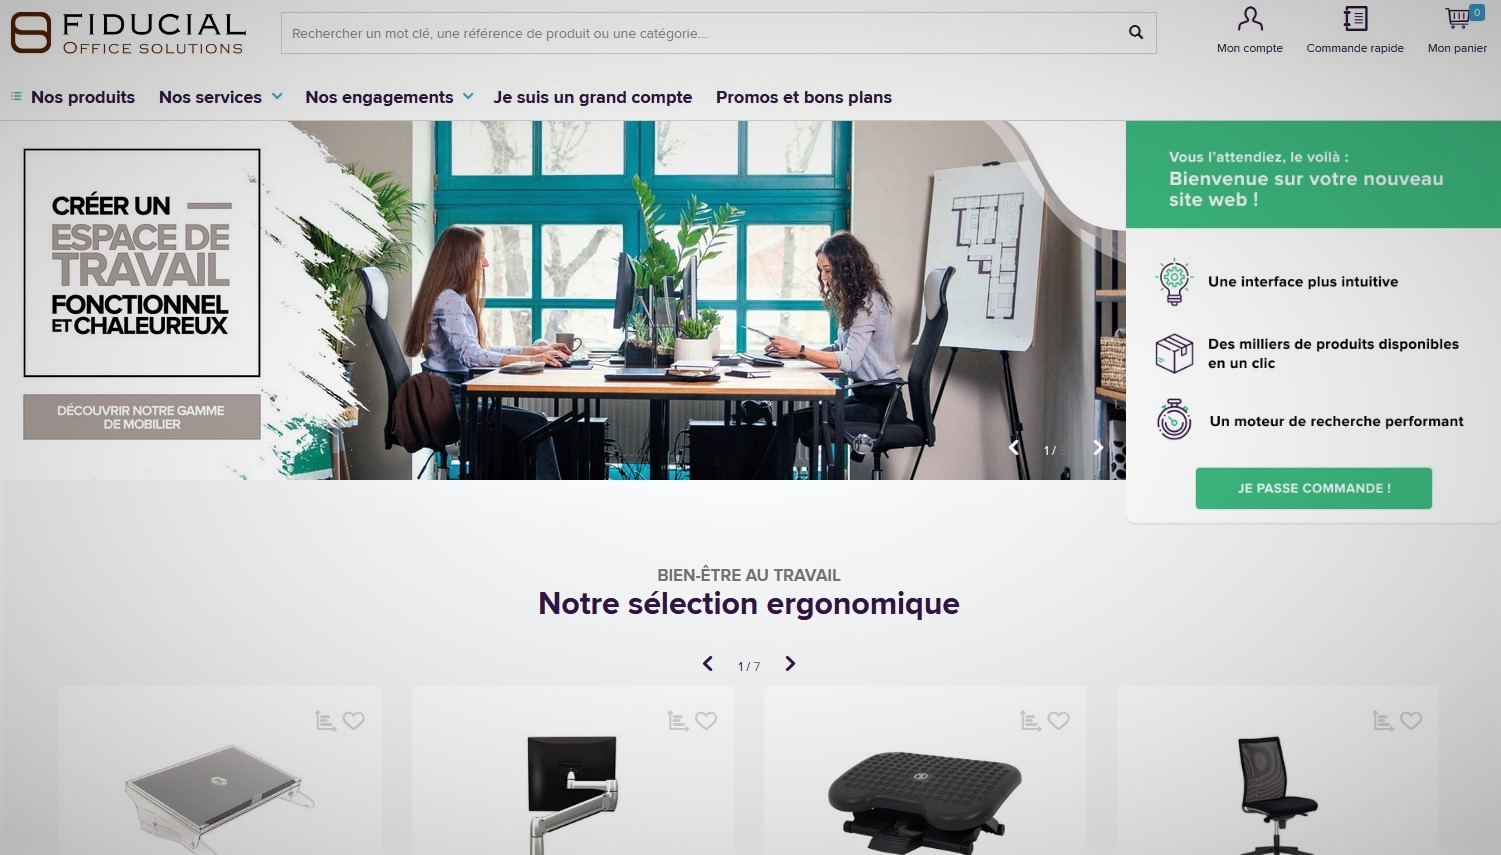 Un nouveau site web pour Fiducial Office Solutions